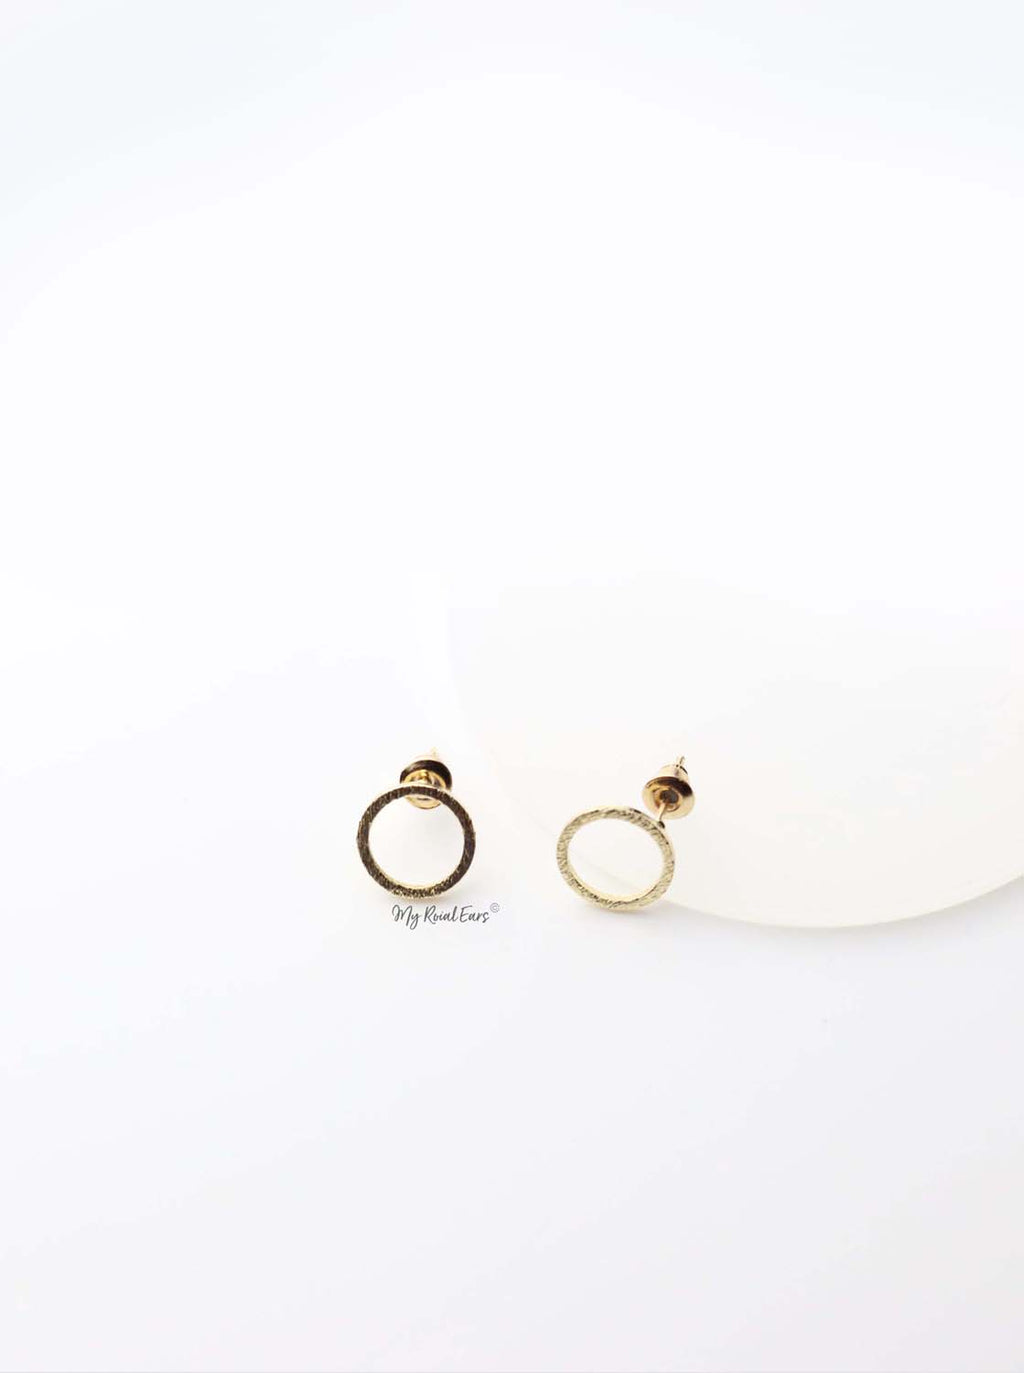 Anthea- gold plated round circle stud earrings - My Roial Ears LTD